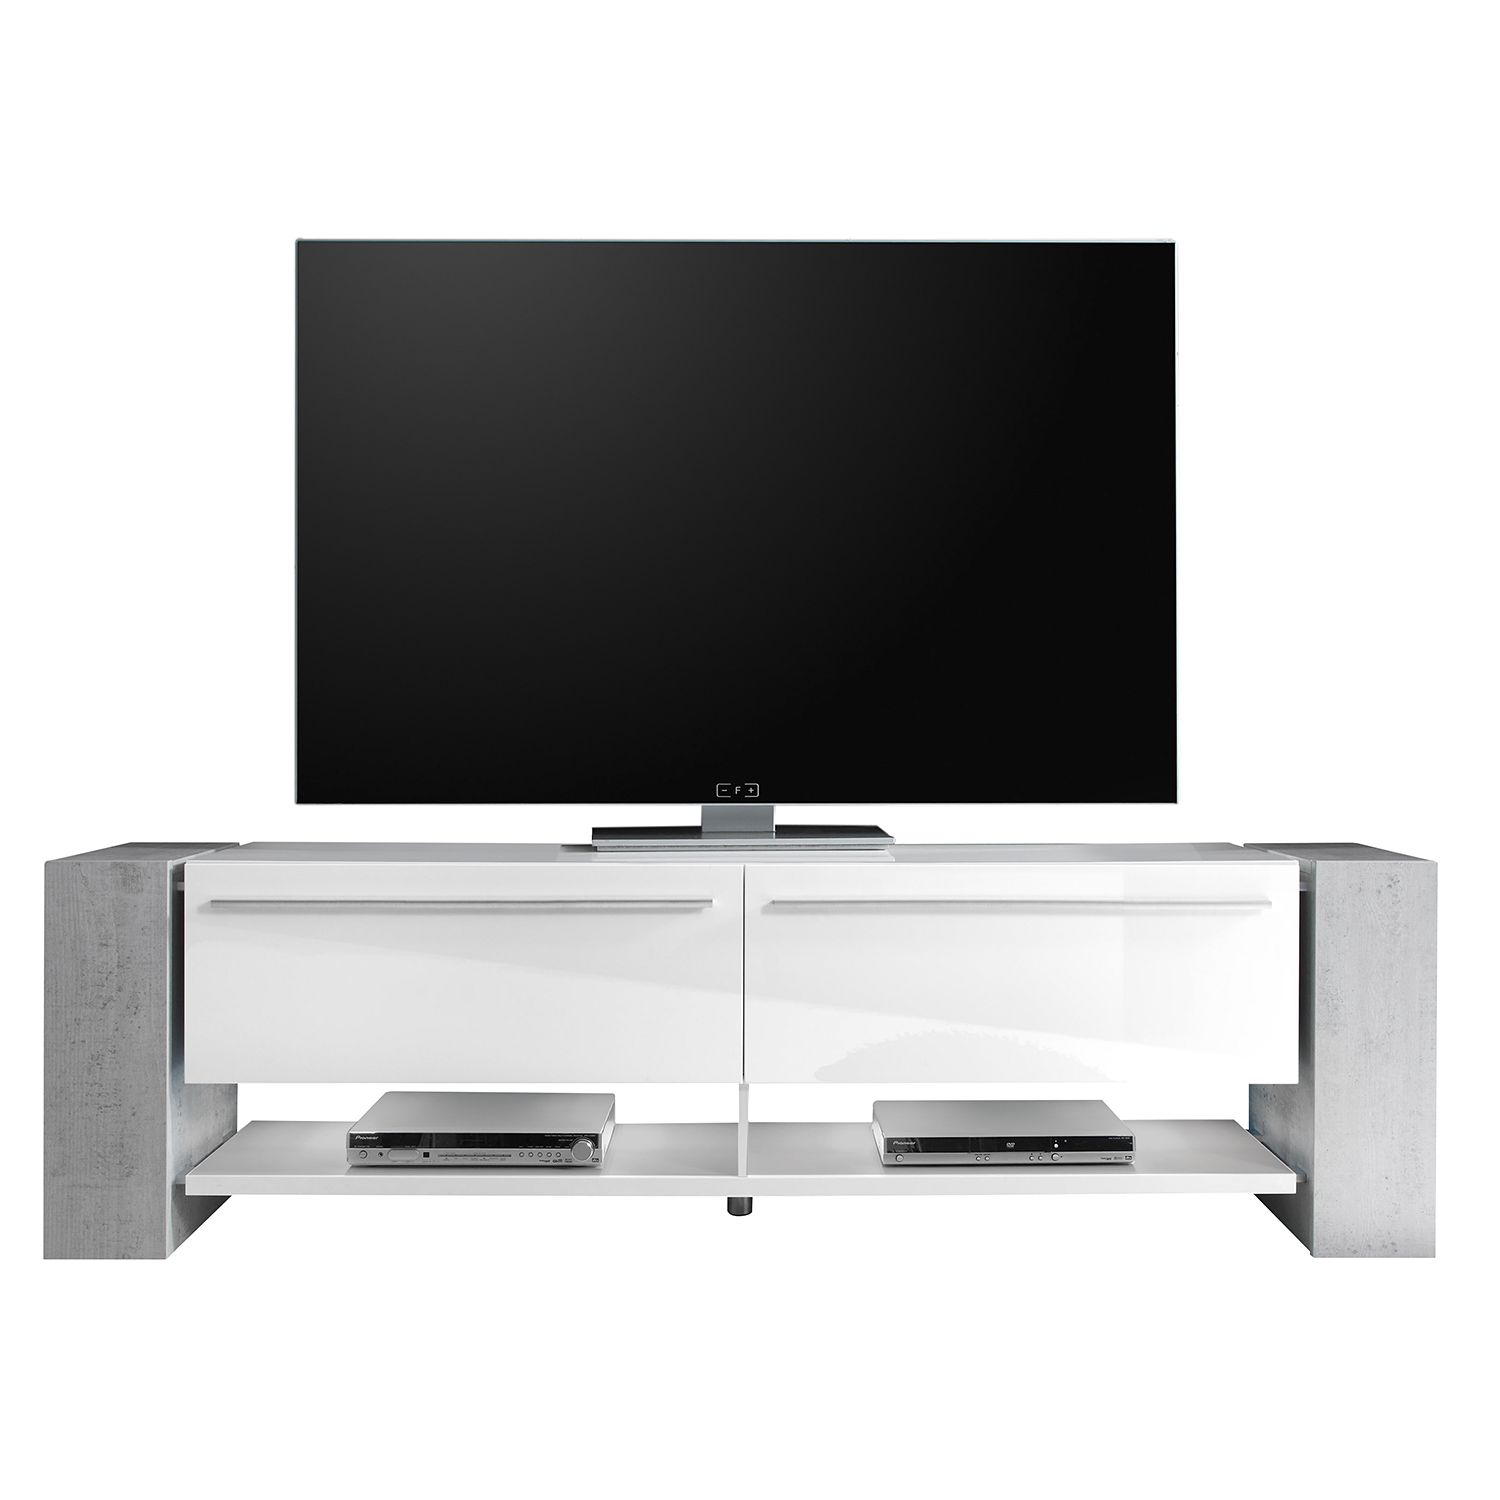 tv lowboard weiss hochglanz preisvergleiche erfahrungsberichte und kauf bei nextag. Black Bedroom Furniture Sets. Home Design Ideas